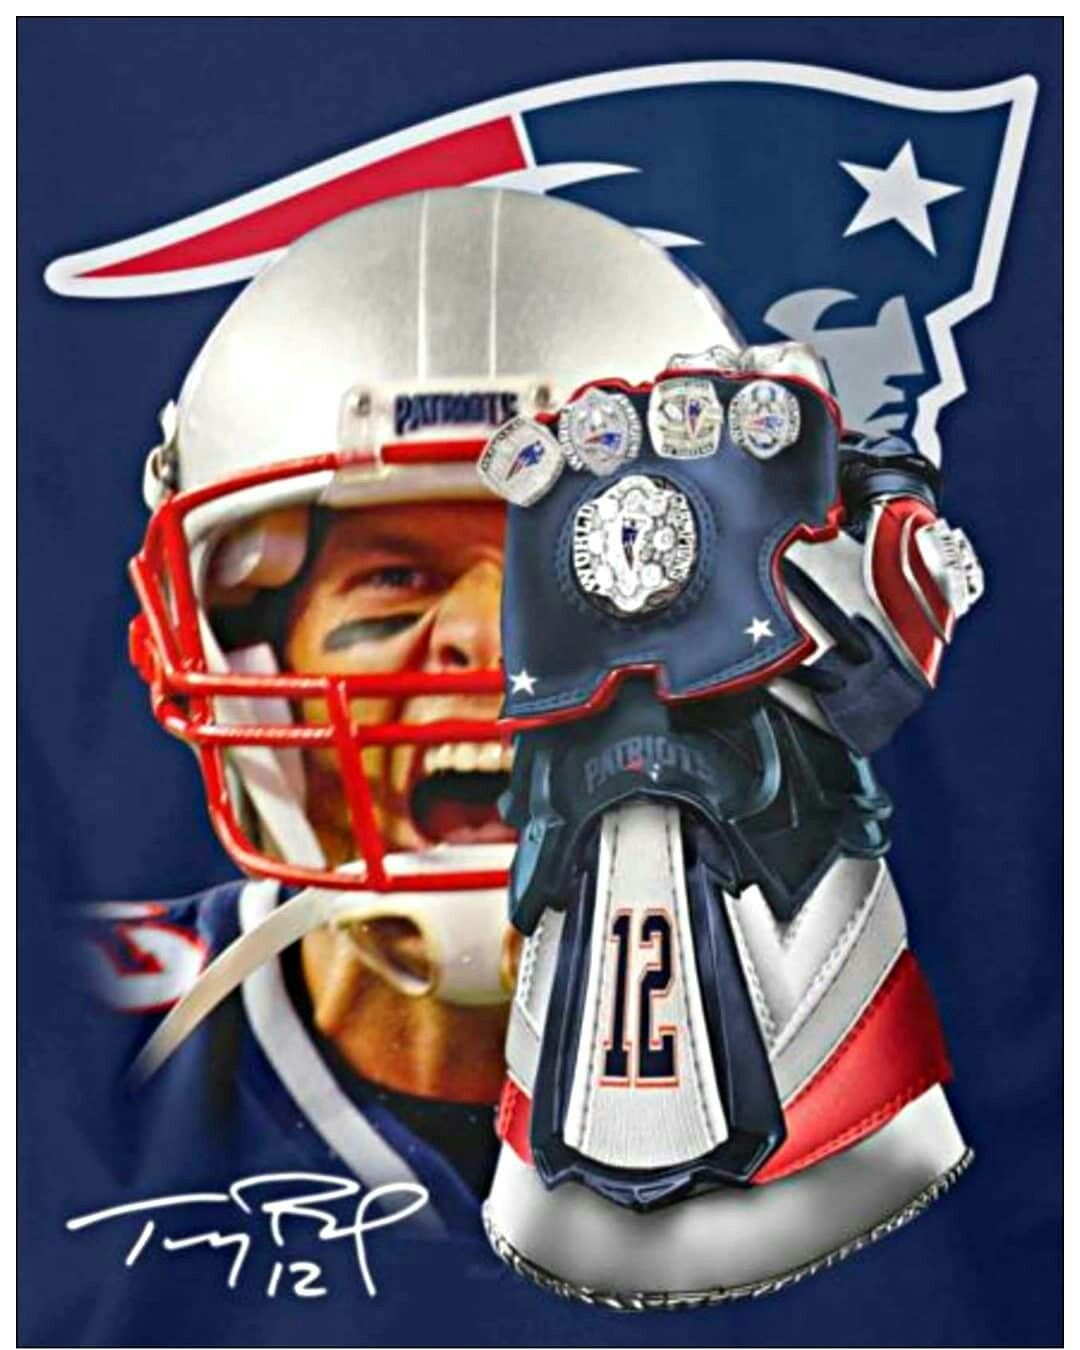 Pin By Fah Que On Go Pats New England Patriots Football New England Patriots Rings Patriots Cheerleaders